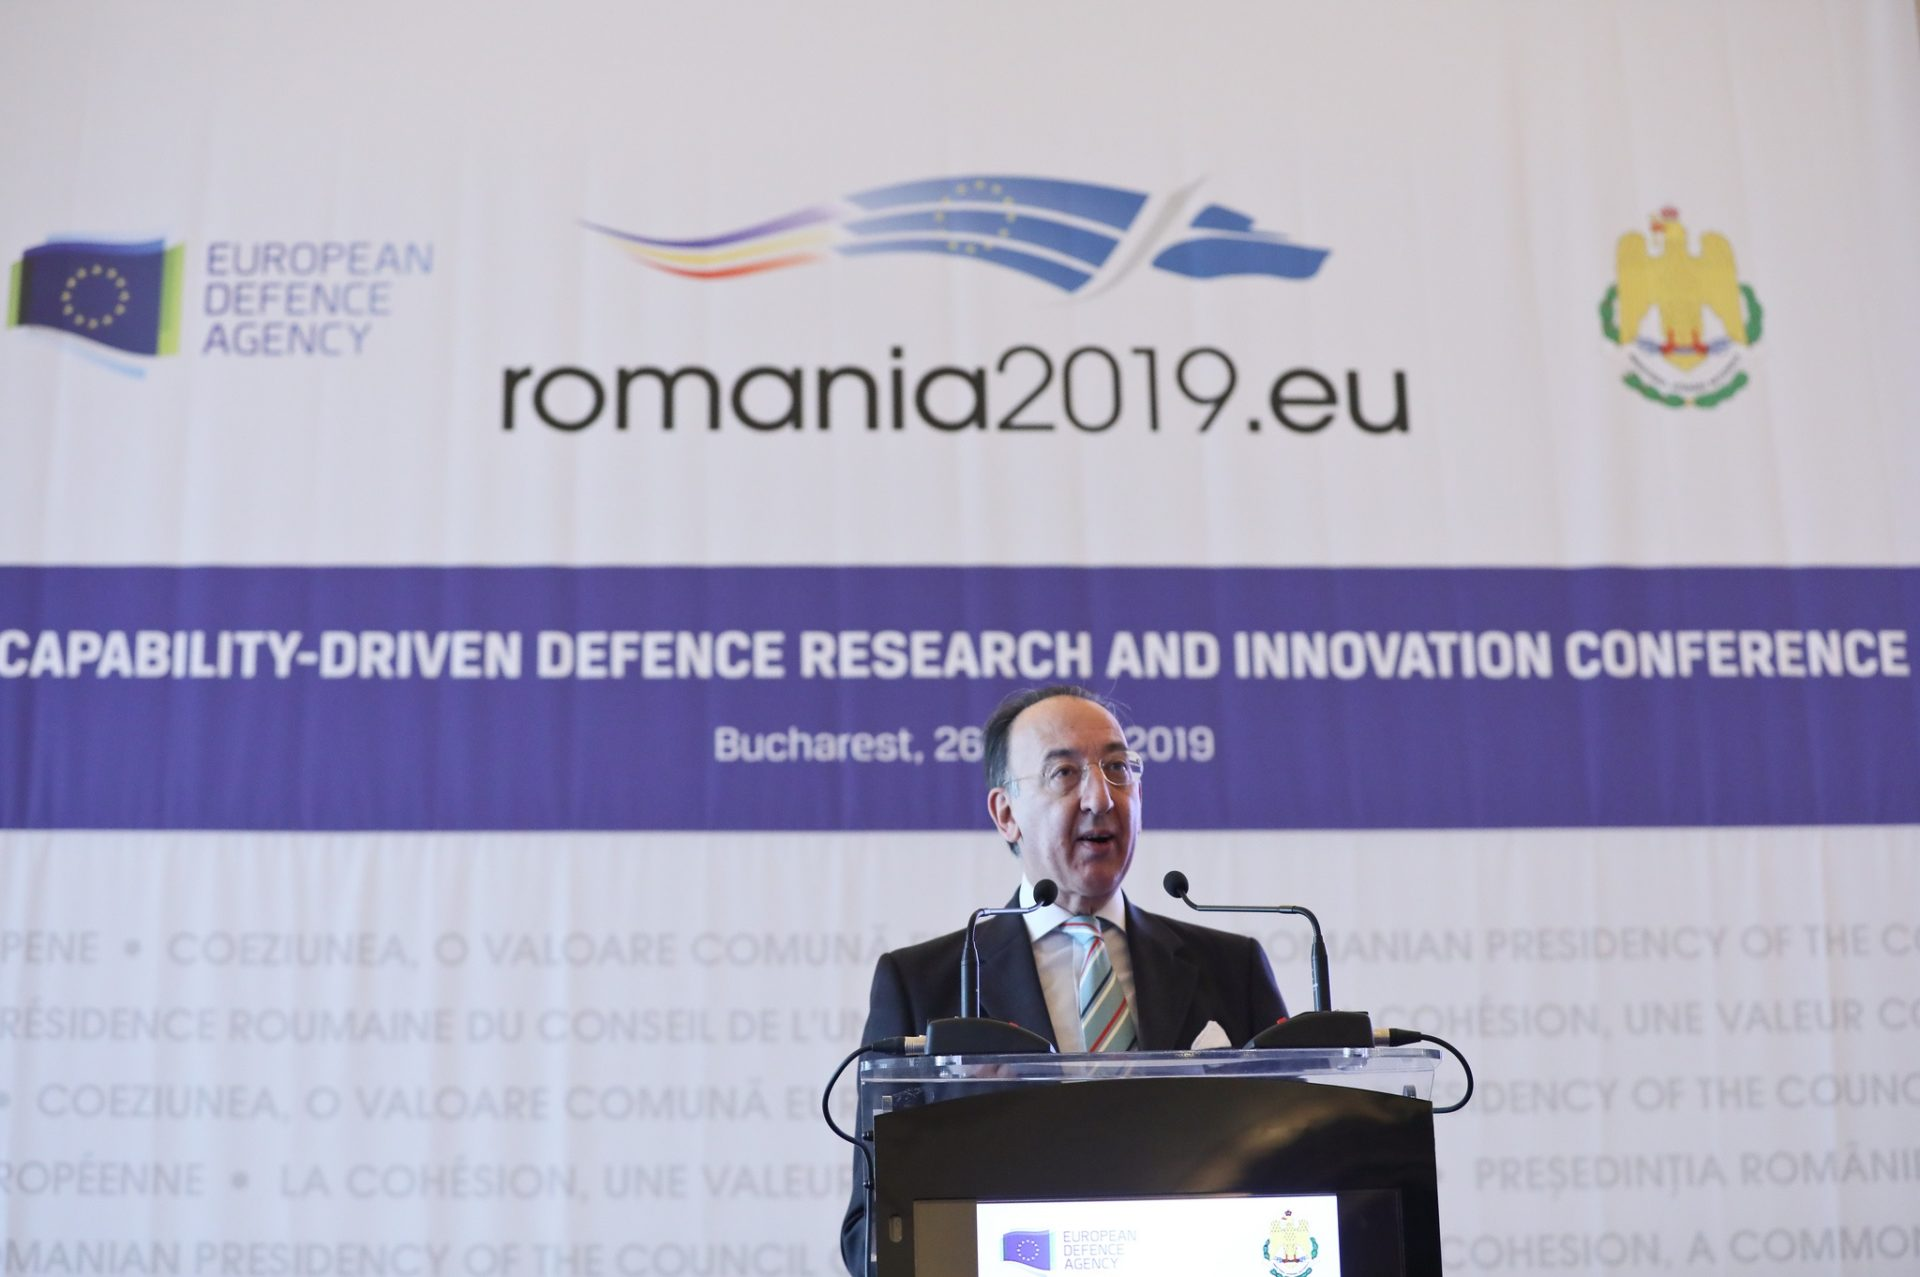 Capability-Driven Defence Research and Innovation Conference